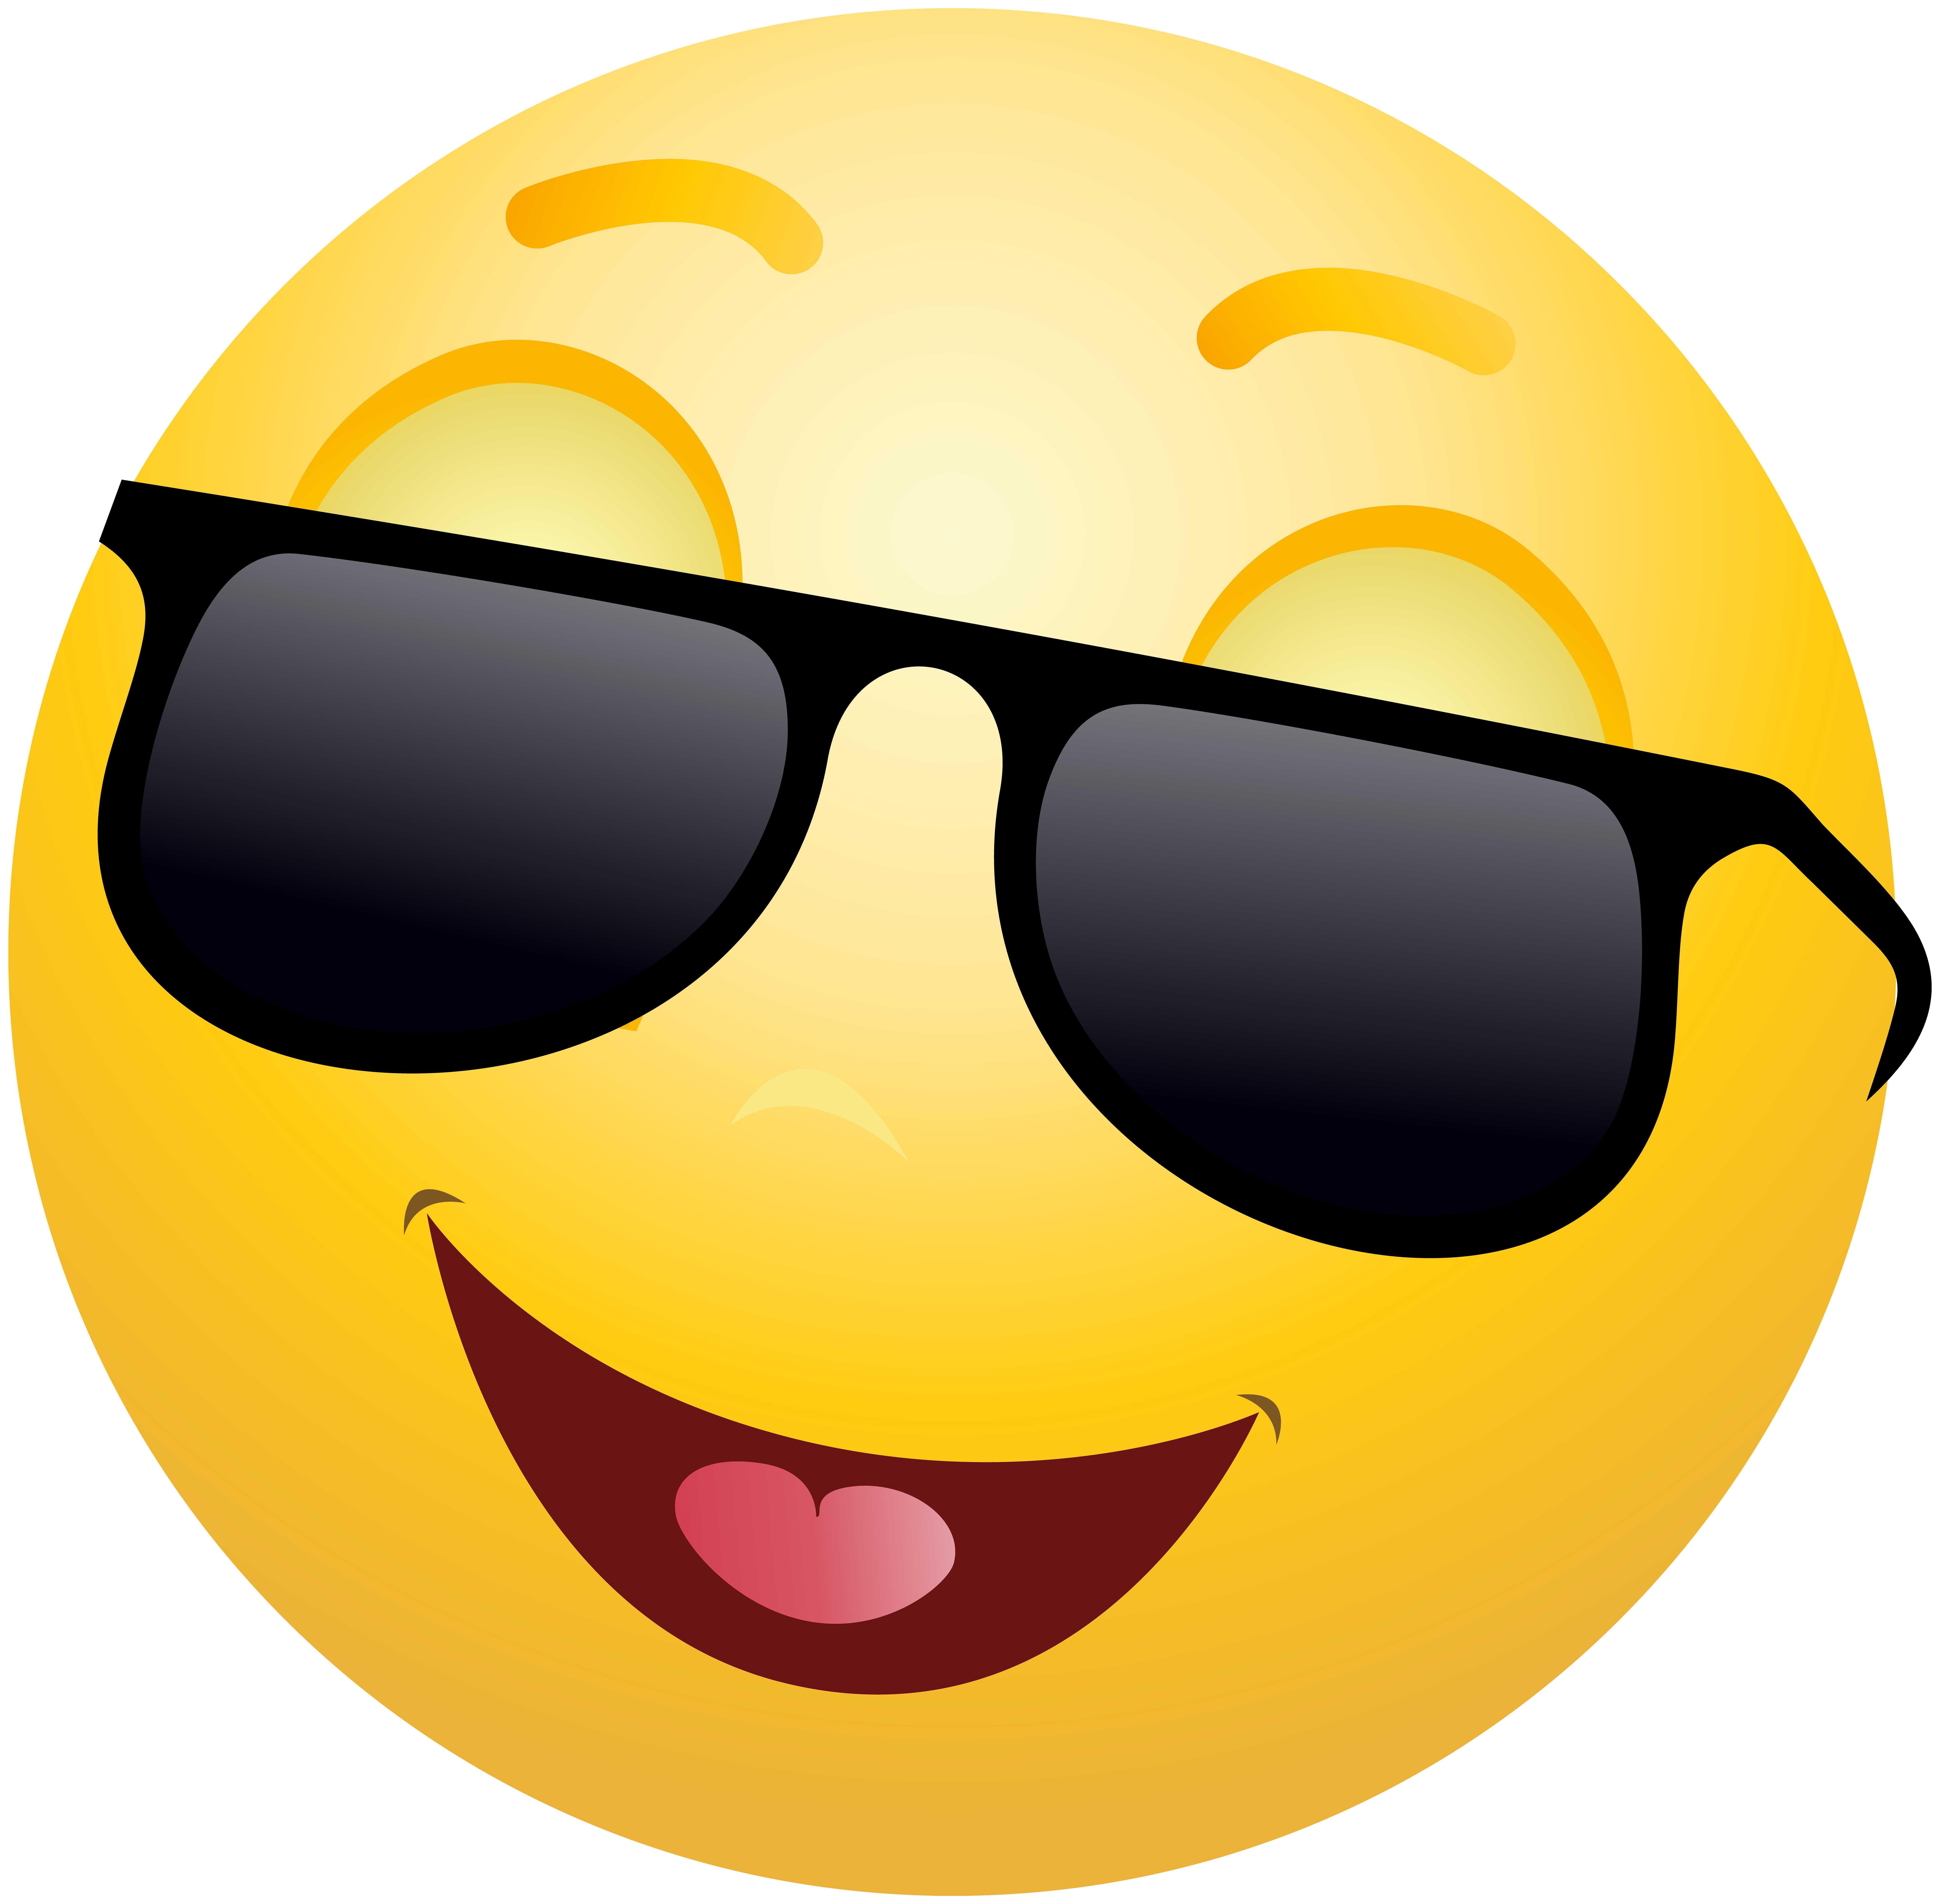 Clipart money smiles graphic library download Smiling Emoticon with Sunglasses PNG Clip Art - Best WEB Clipart graphic library download